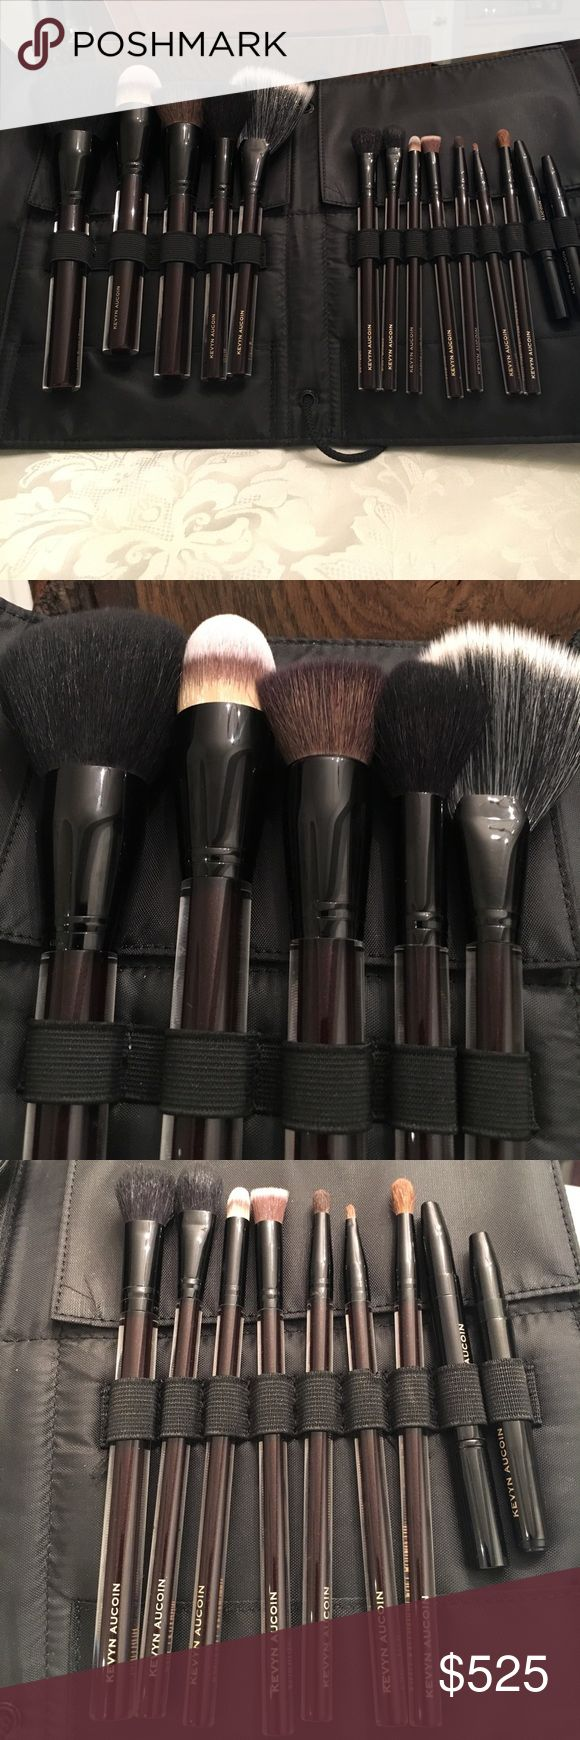 The Essential Brush Collection This professional makeup brush set comes in a faux leather case. This is a treasure for anyone who truly appreciates makeup artistry. Has never been used. In perfect condition. No box. kevyn Aucoin Makeup Brushes & Tools